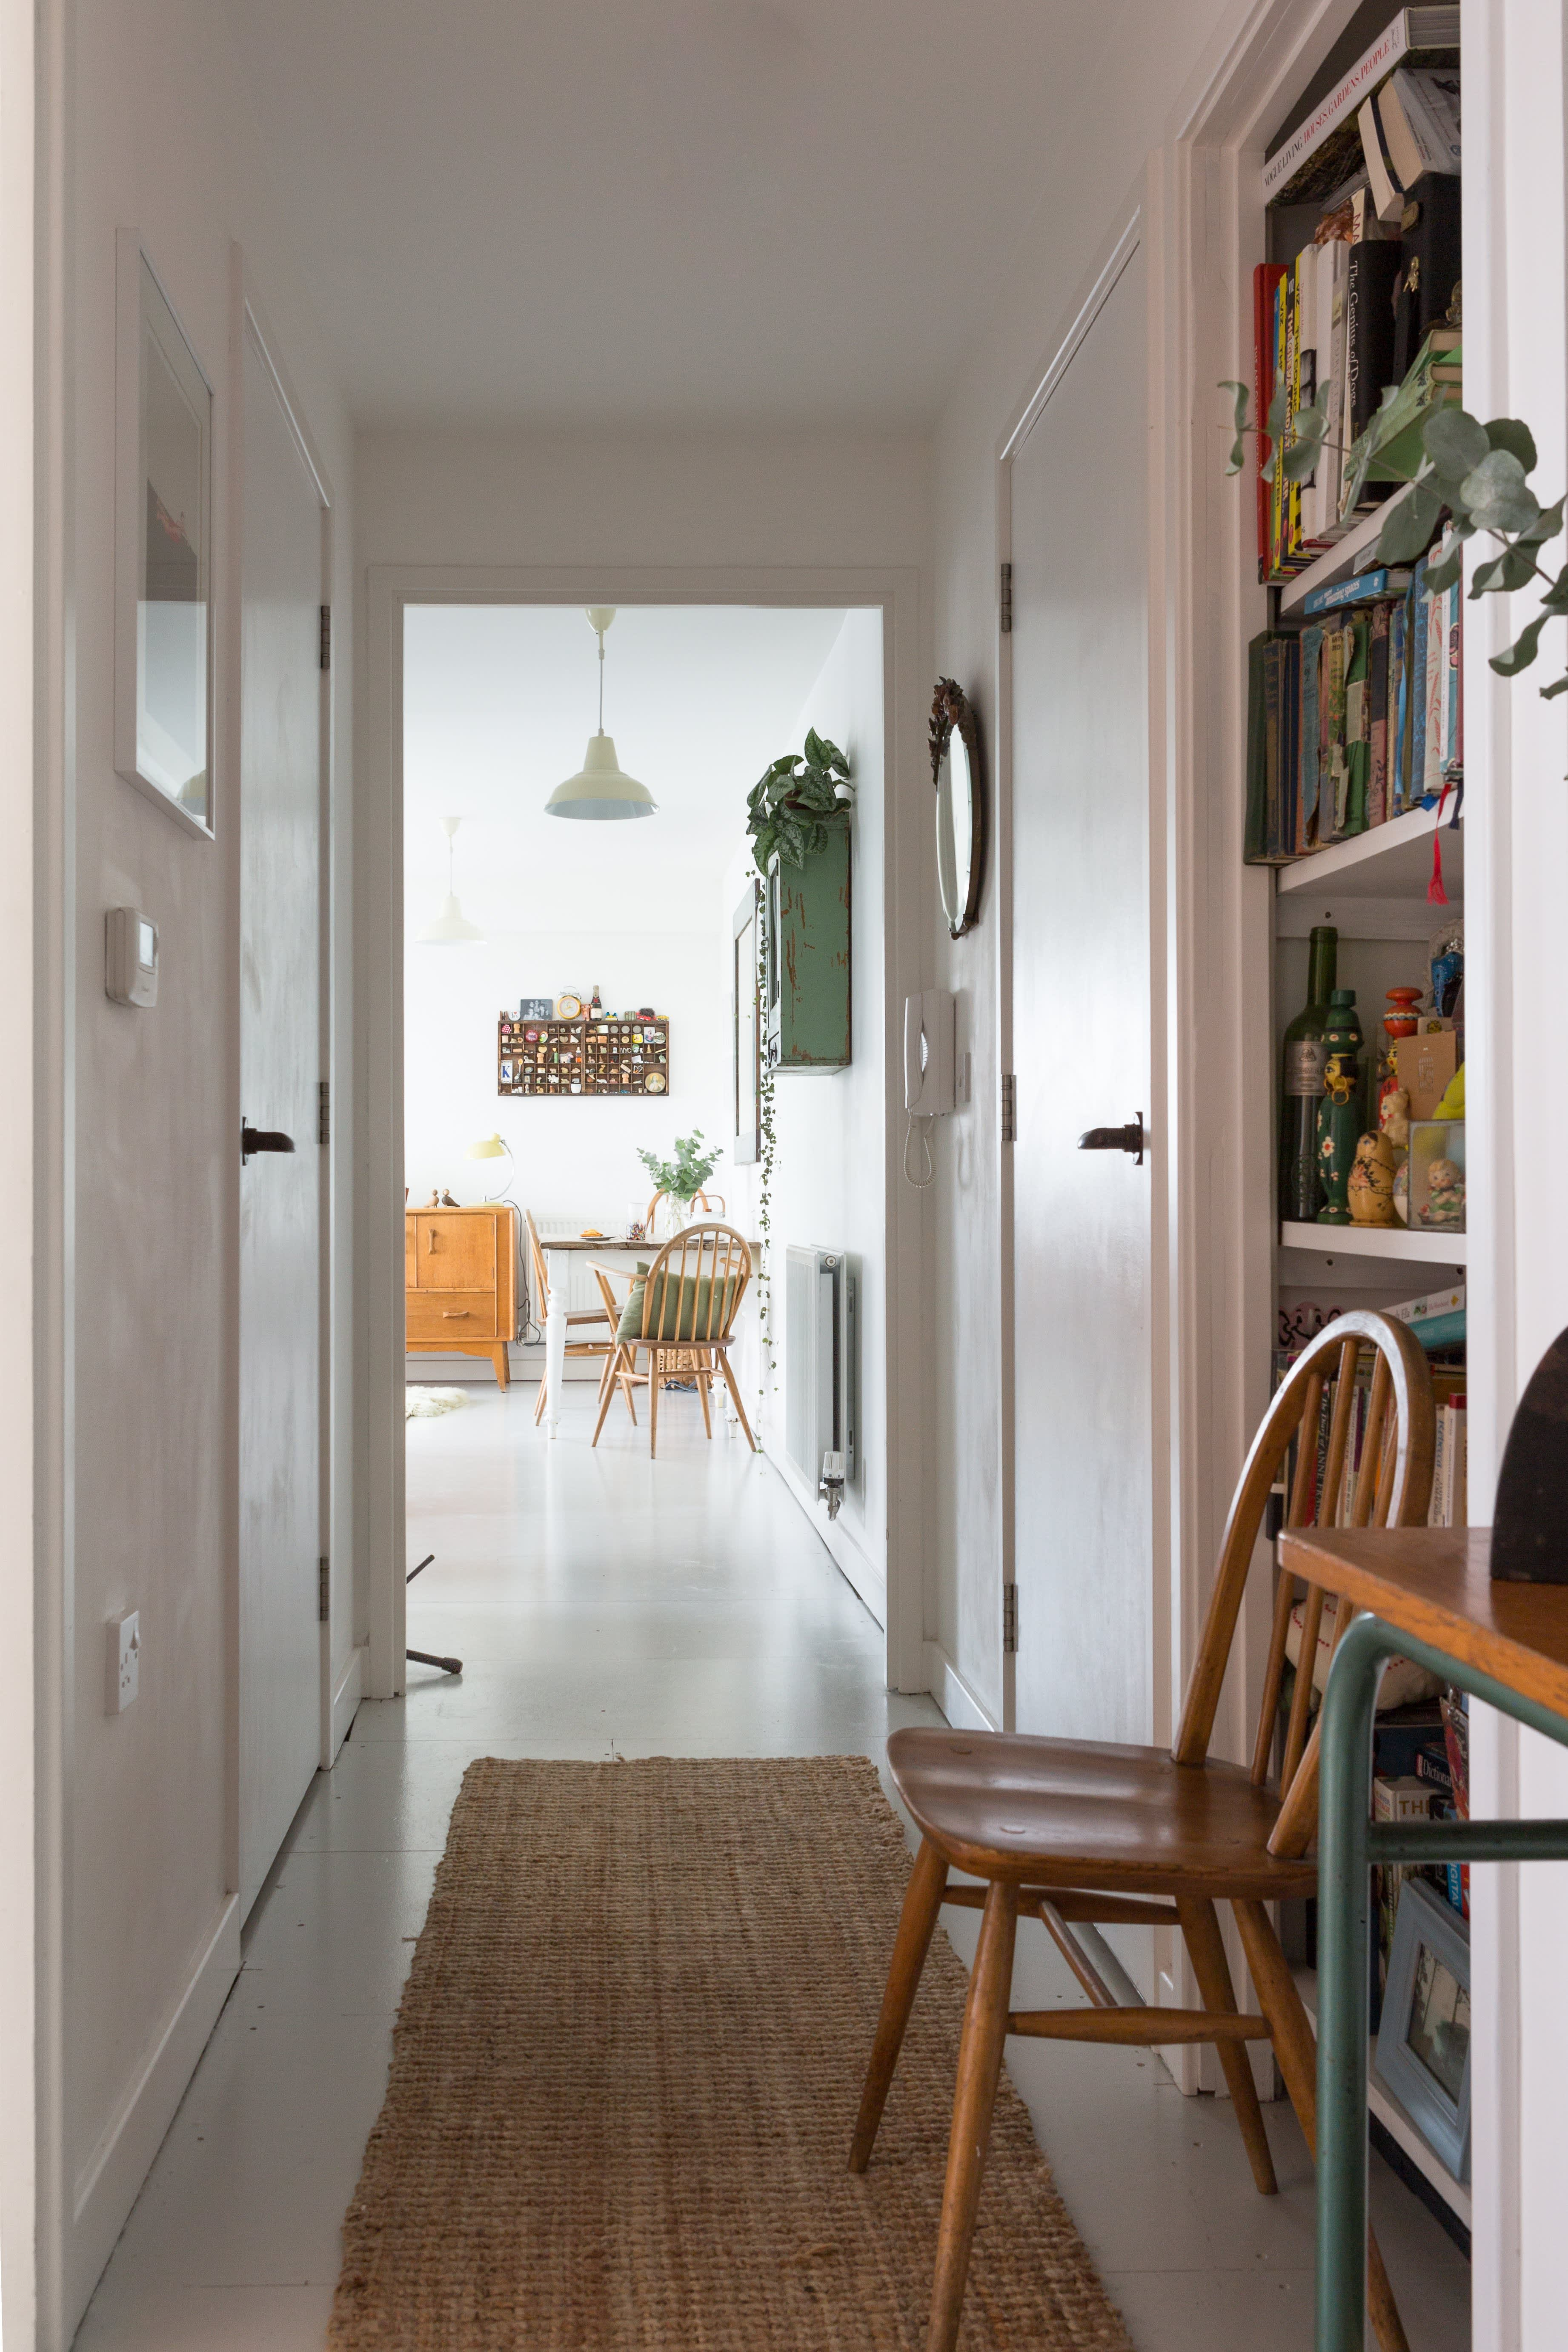 House Tour: An Eclectic and Always-Changing London Flat